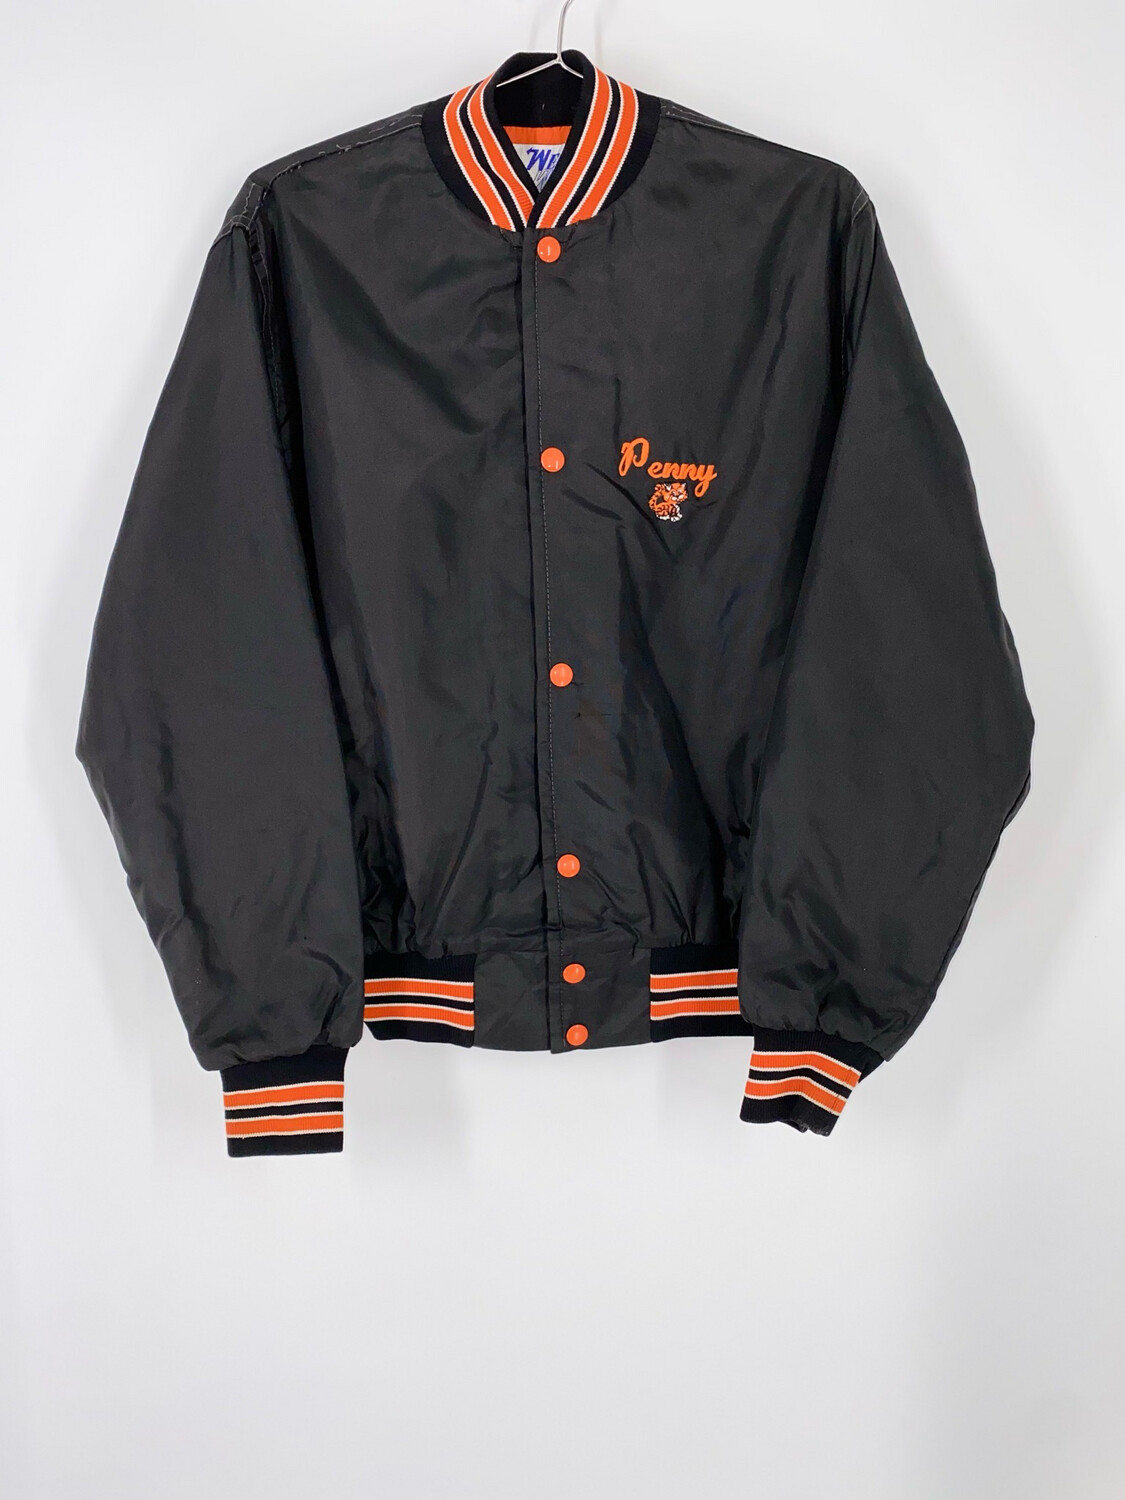 West Wind Embroidered Bomber Jacket Size S